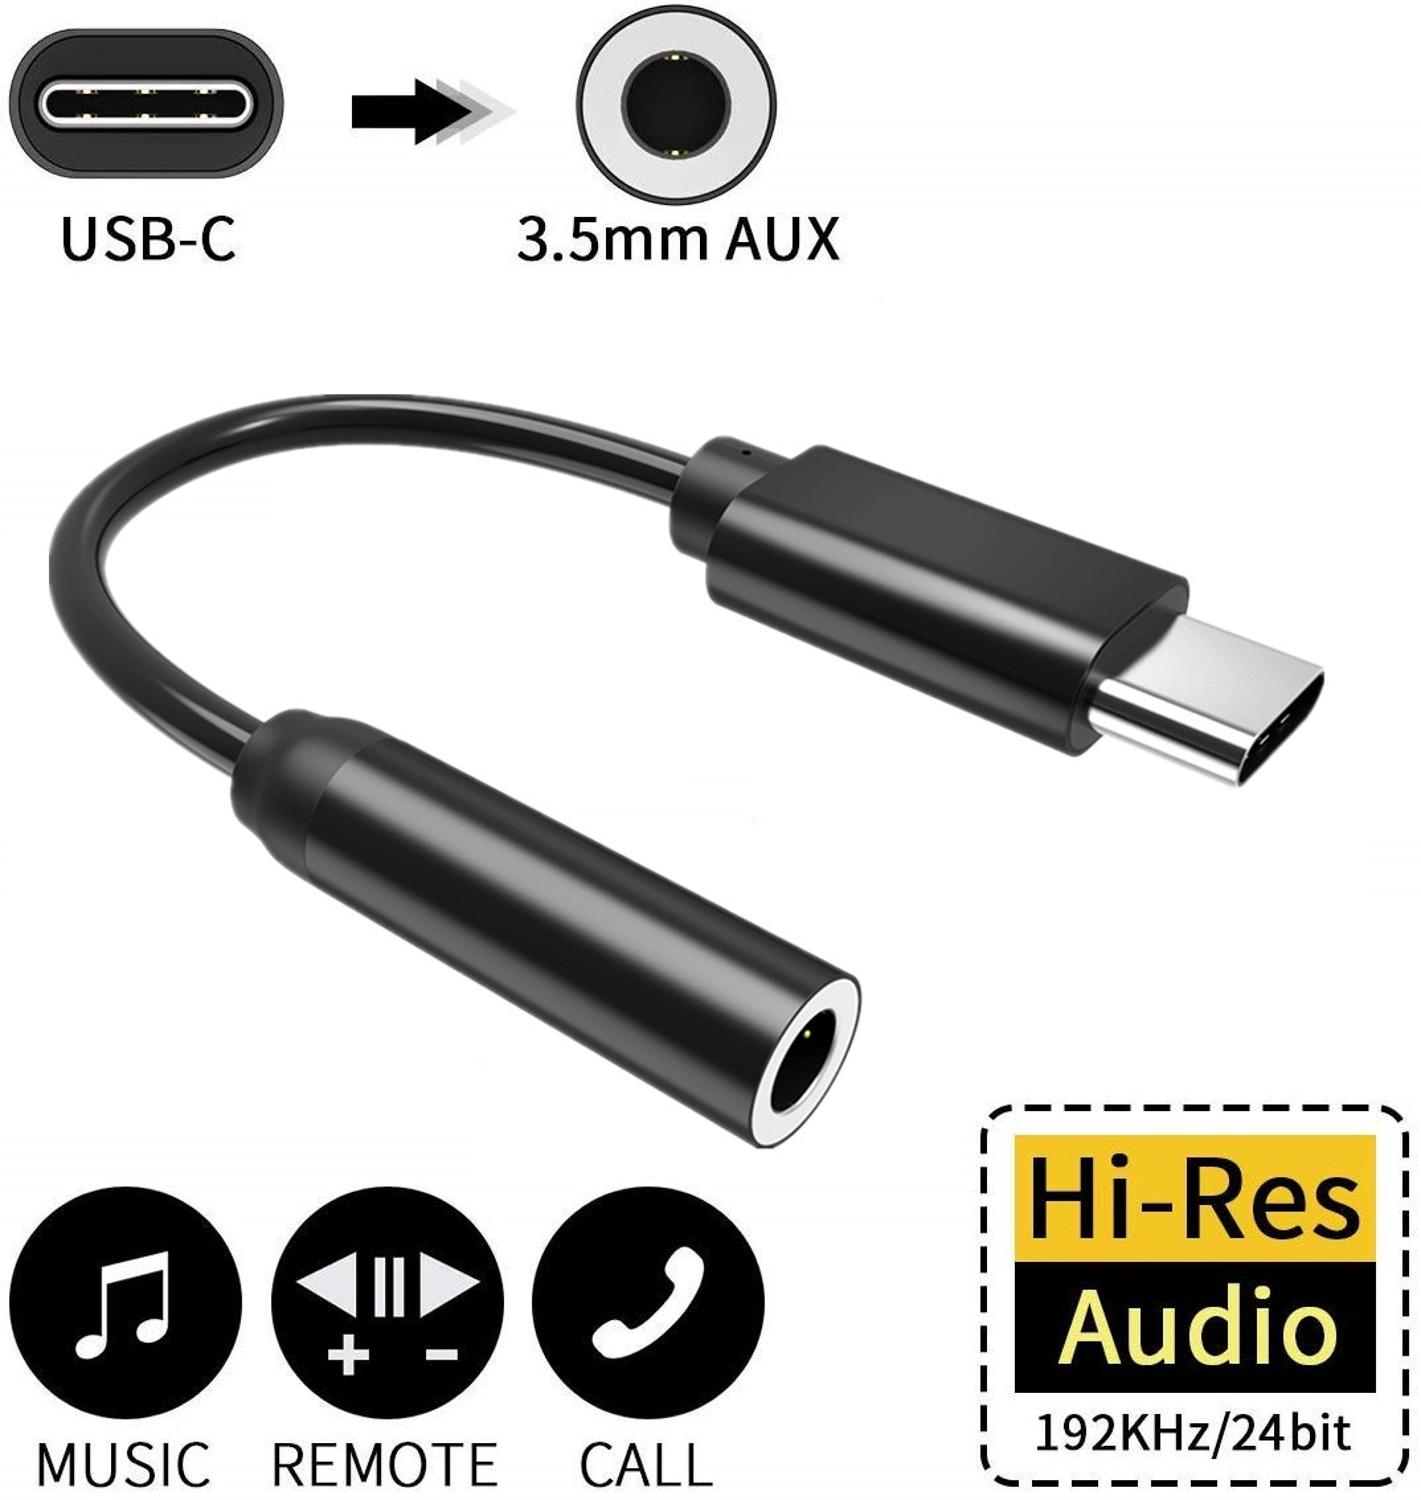 USB Type C To 3.5 Mm Headphone Jack Adaptor For Samsung Note 10 Huawei P30 P20 Pro Mate 10 Pro Xiaomi Mi 8/Mix 3,Google Pixel 3